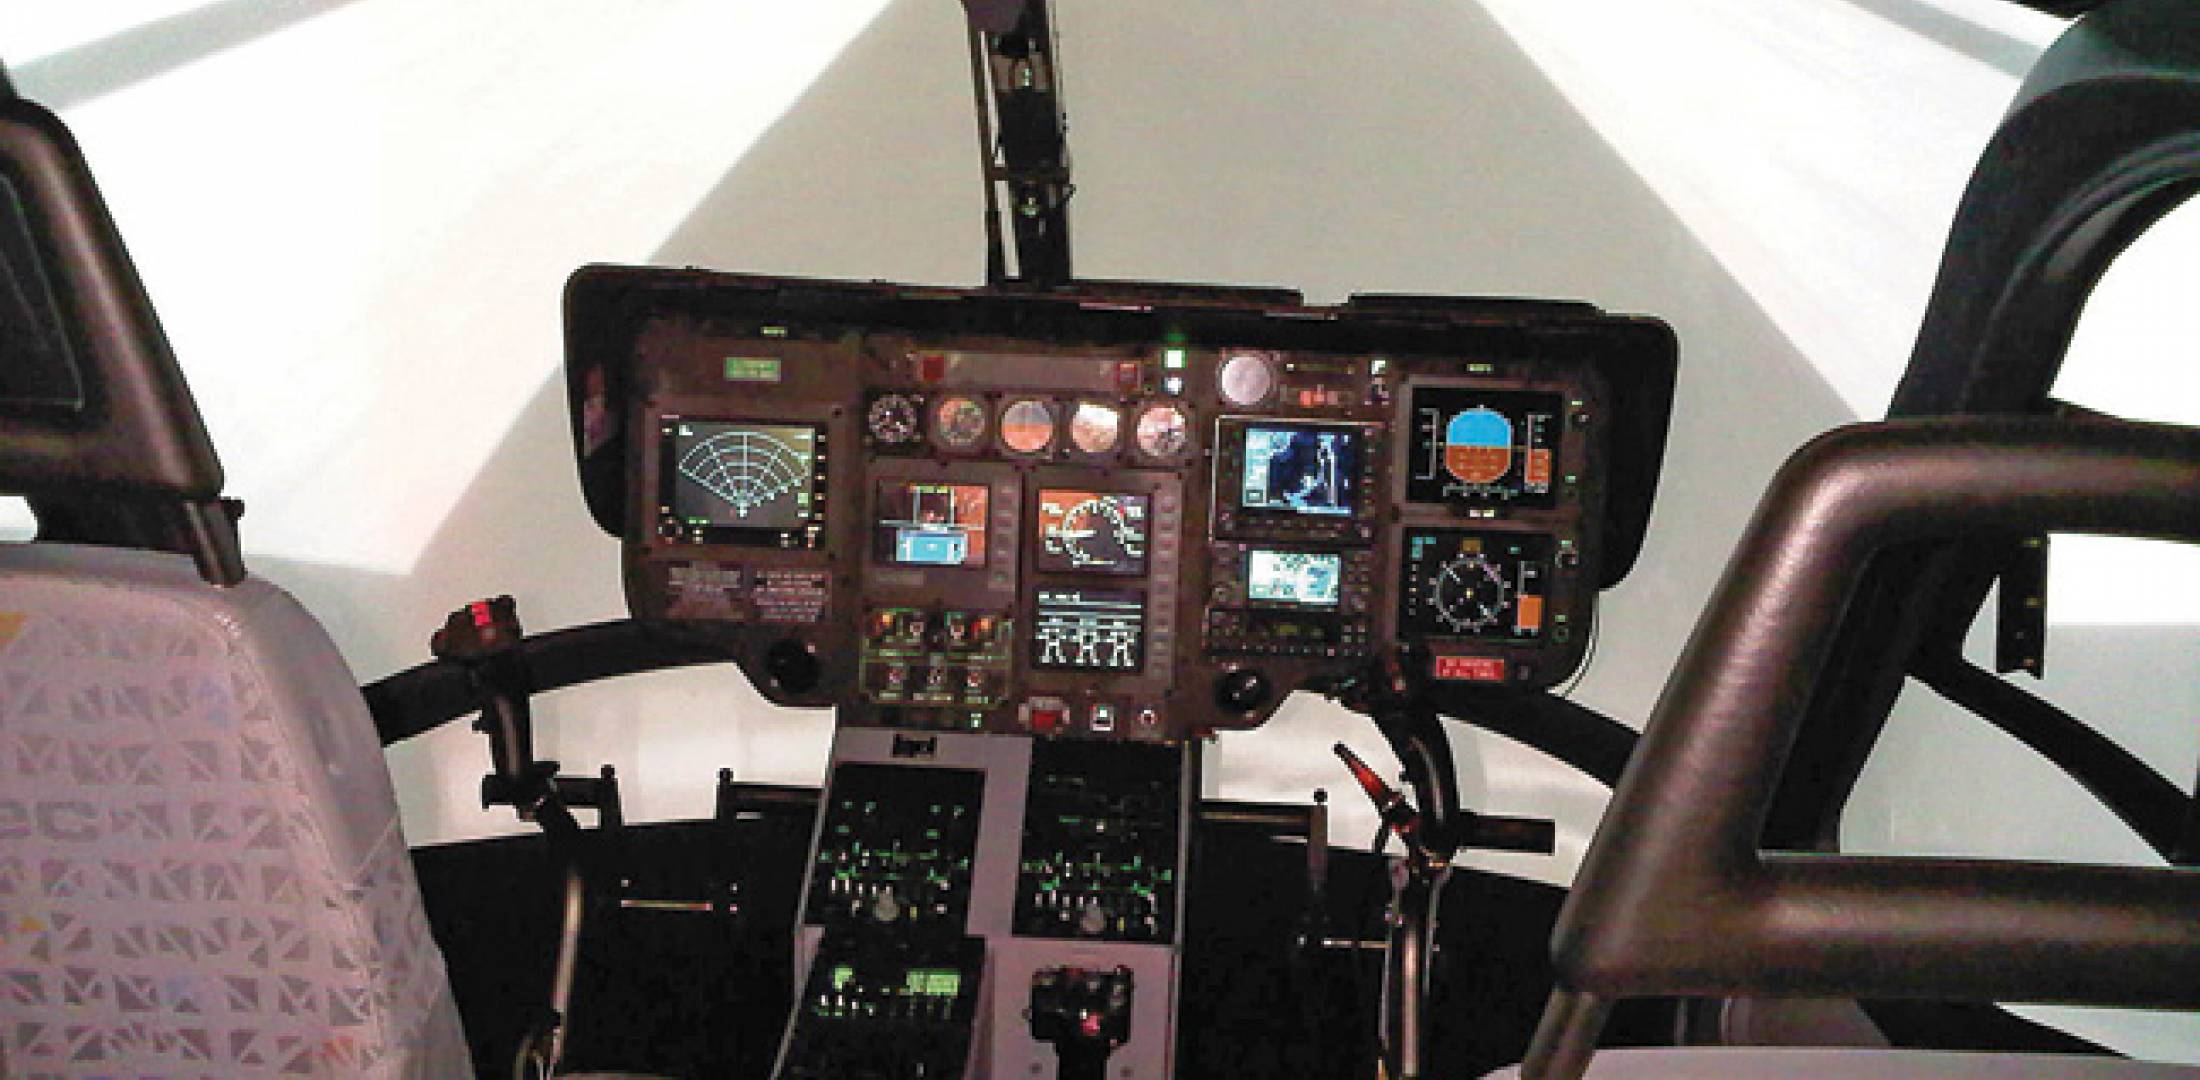 FlightSafety's level-D full motion simulator for the Eurocopter EC135 provides realistic training through Vital X graphics and five-projector technology. The EC135 sim, one of the busiest at FlightSafety's Dallas training center, was built with input from Metro Aviation. In addition to EMS and offshore scenario-based training, the simulator provides training on inadvertent IMC and flying in challenging areas.